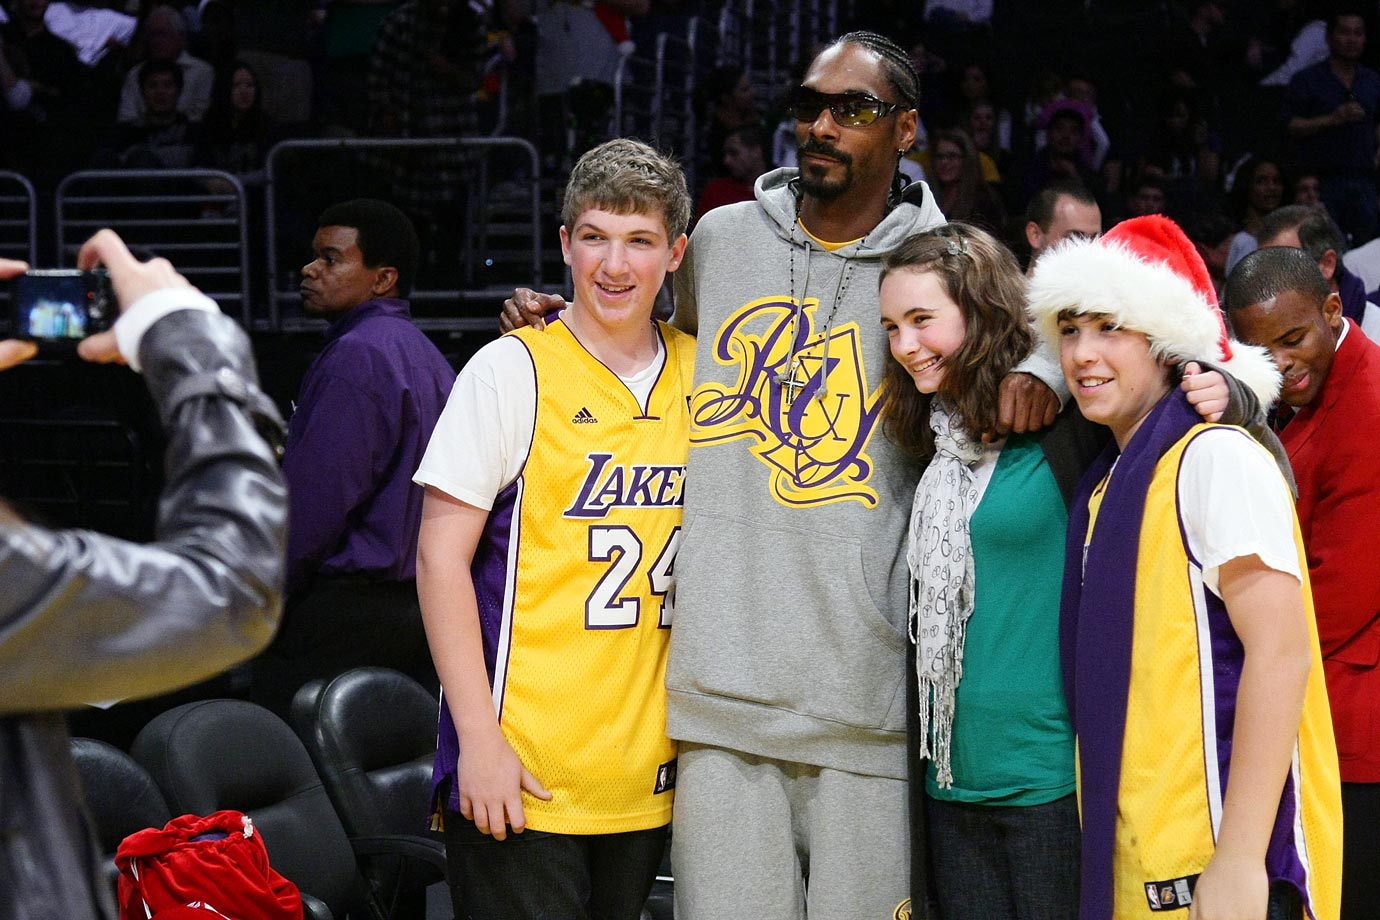 Snoop Dogg poses with fans during the Los Angeles Lakers game against the Boston Celtics on Dec. 25, 2008 at Staples Center in Los Angeles.